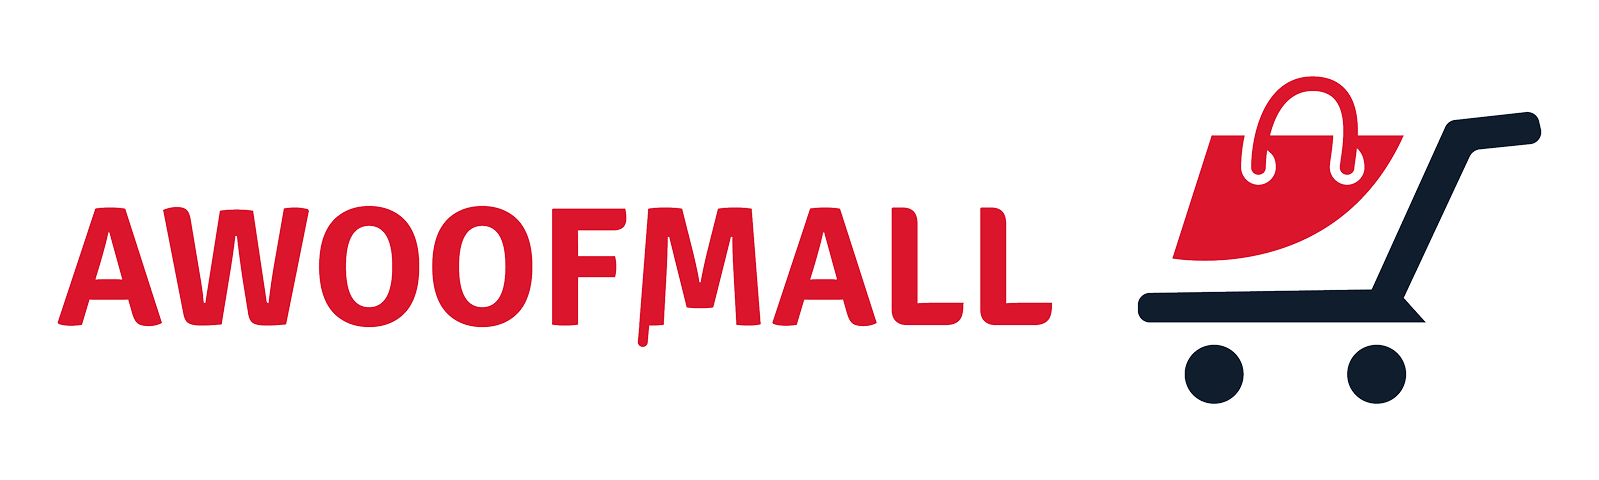 AwoofMall